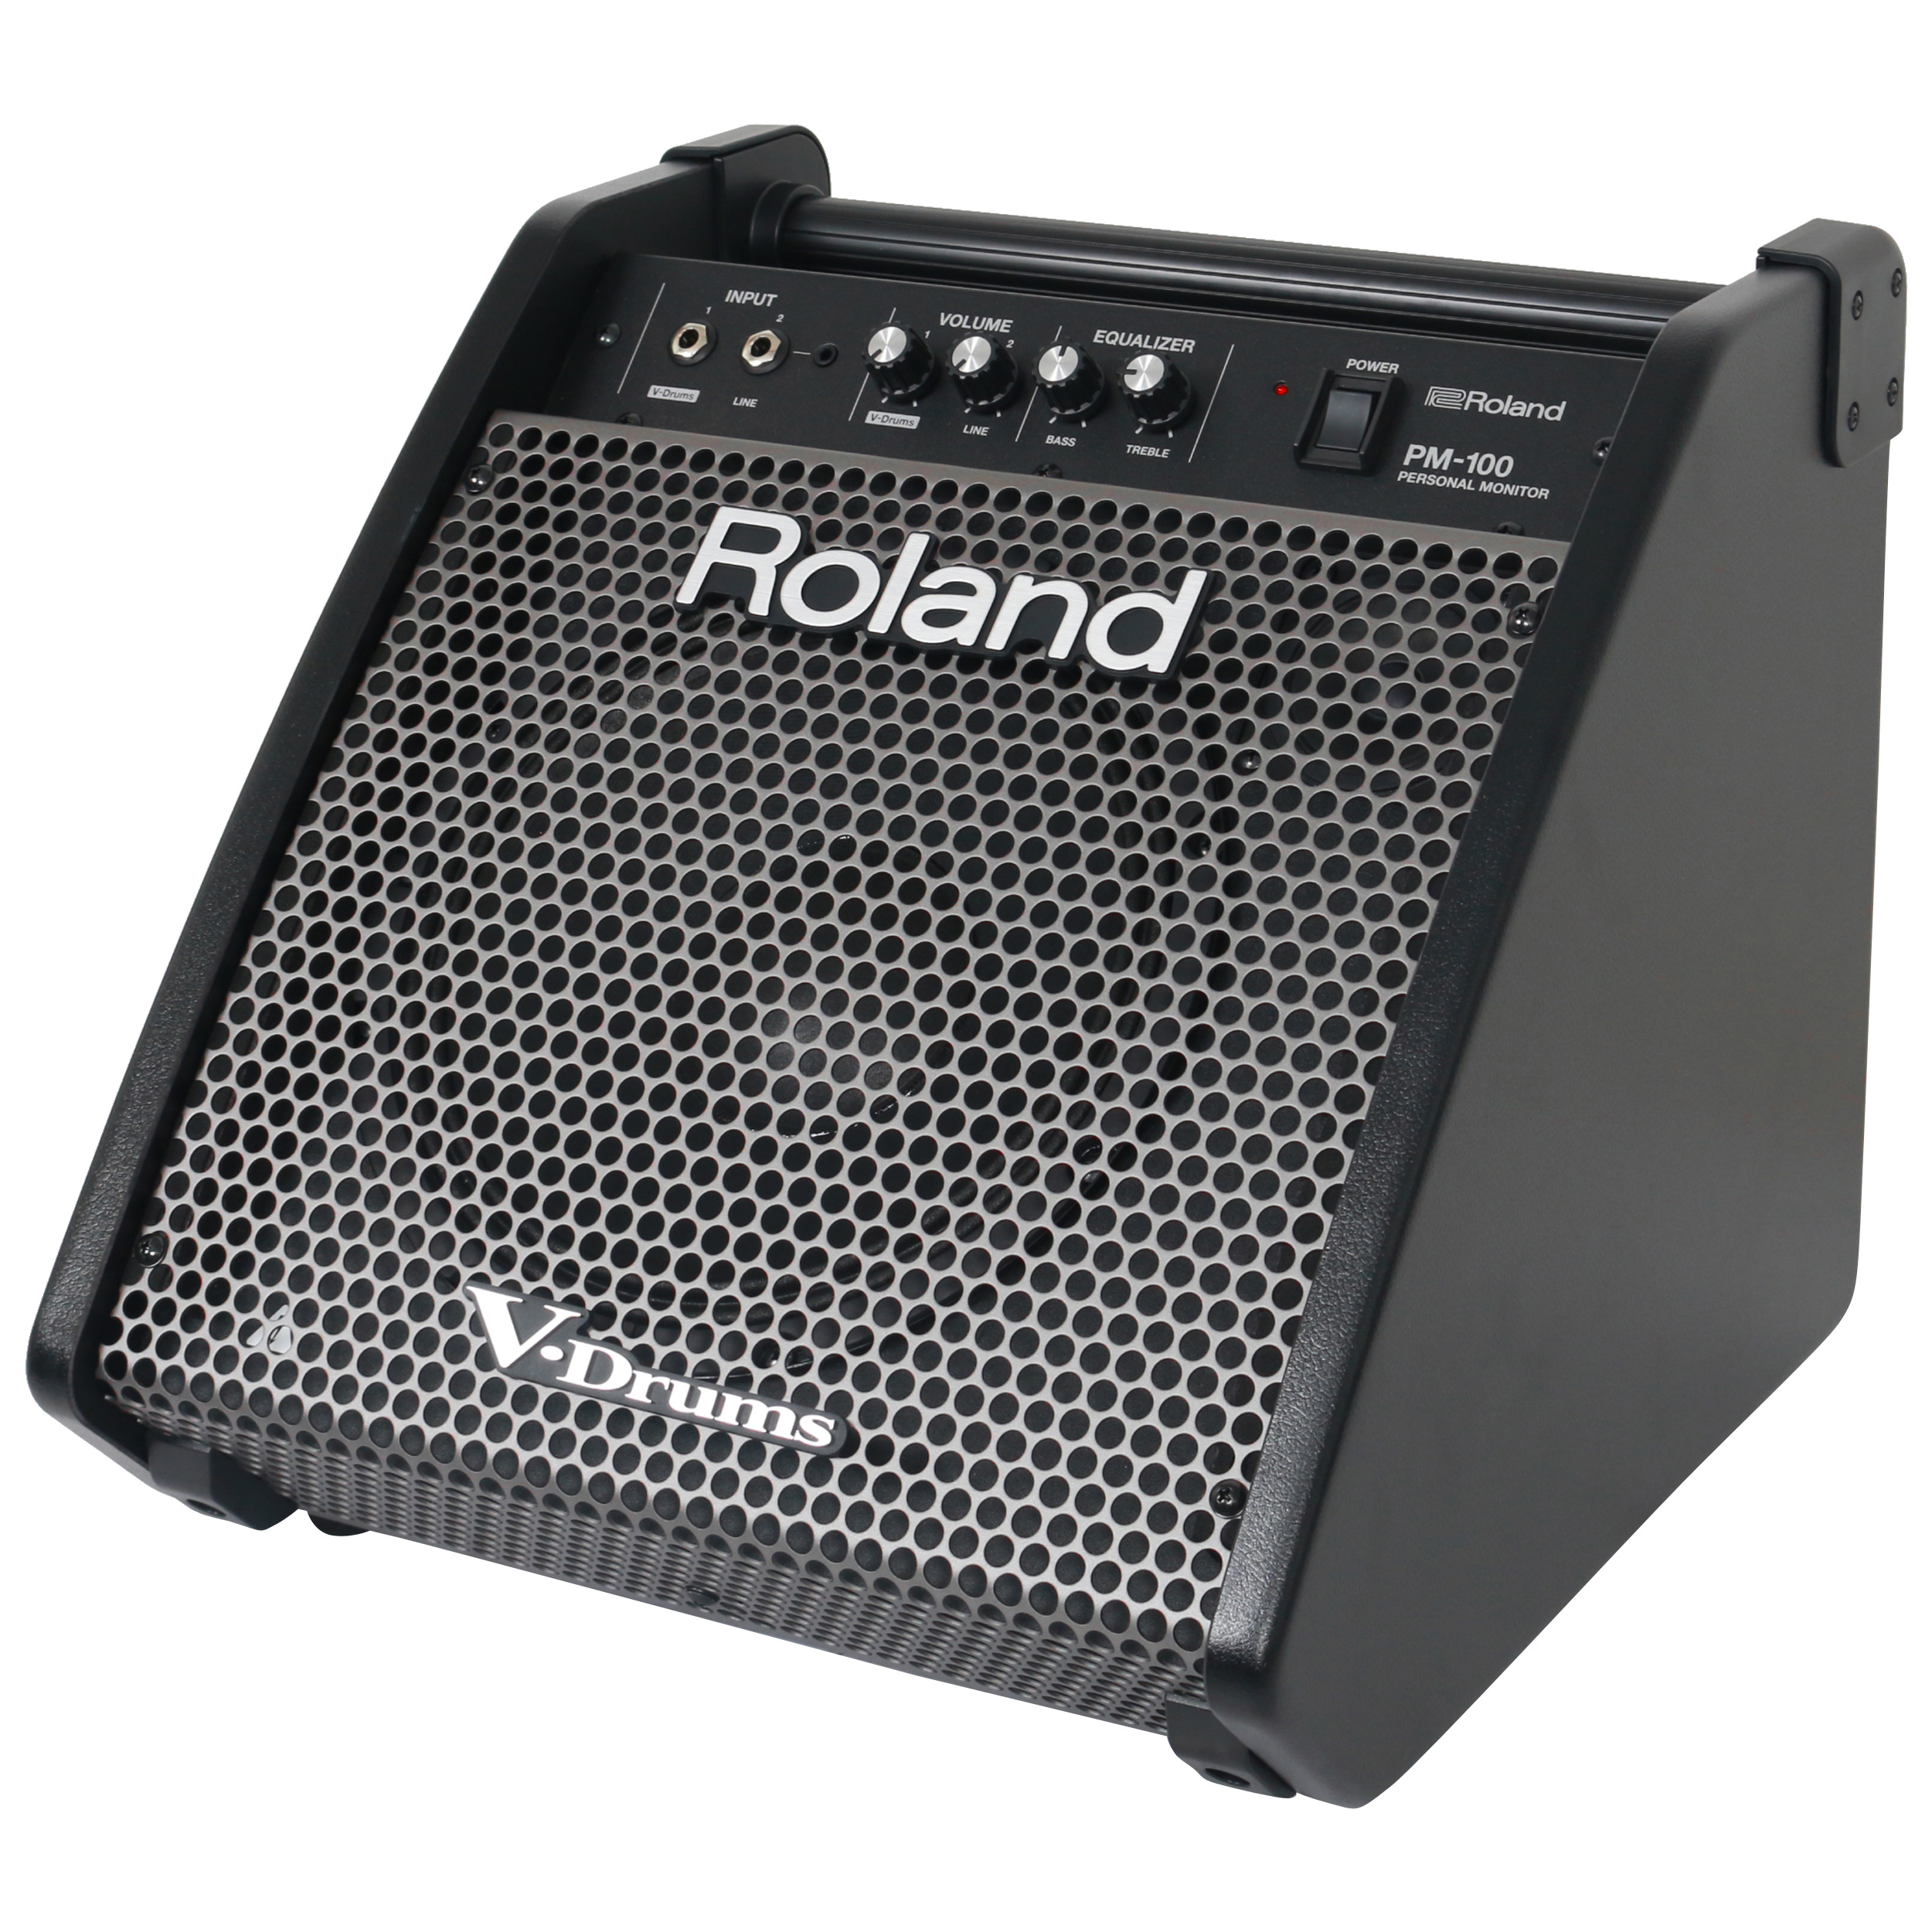 Roland PM 100 drum monitor for V Drums 80W